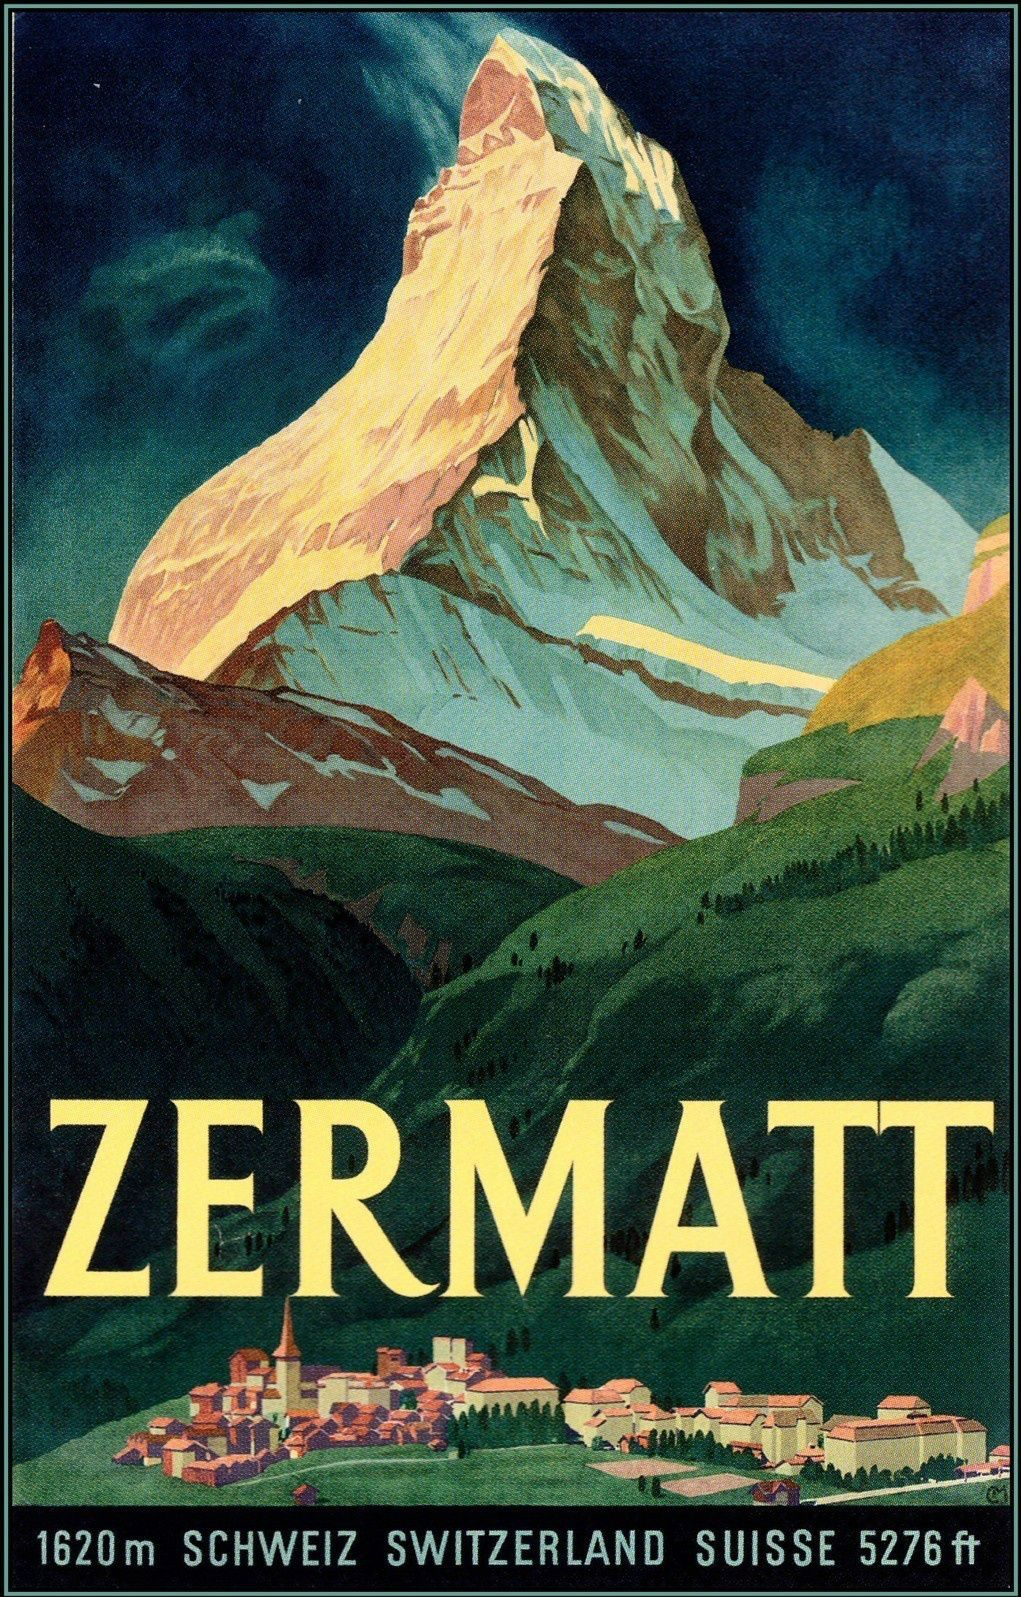 Vintage Zermatt Switzerland Travel Poster